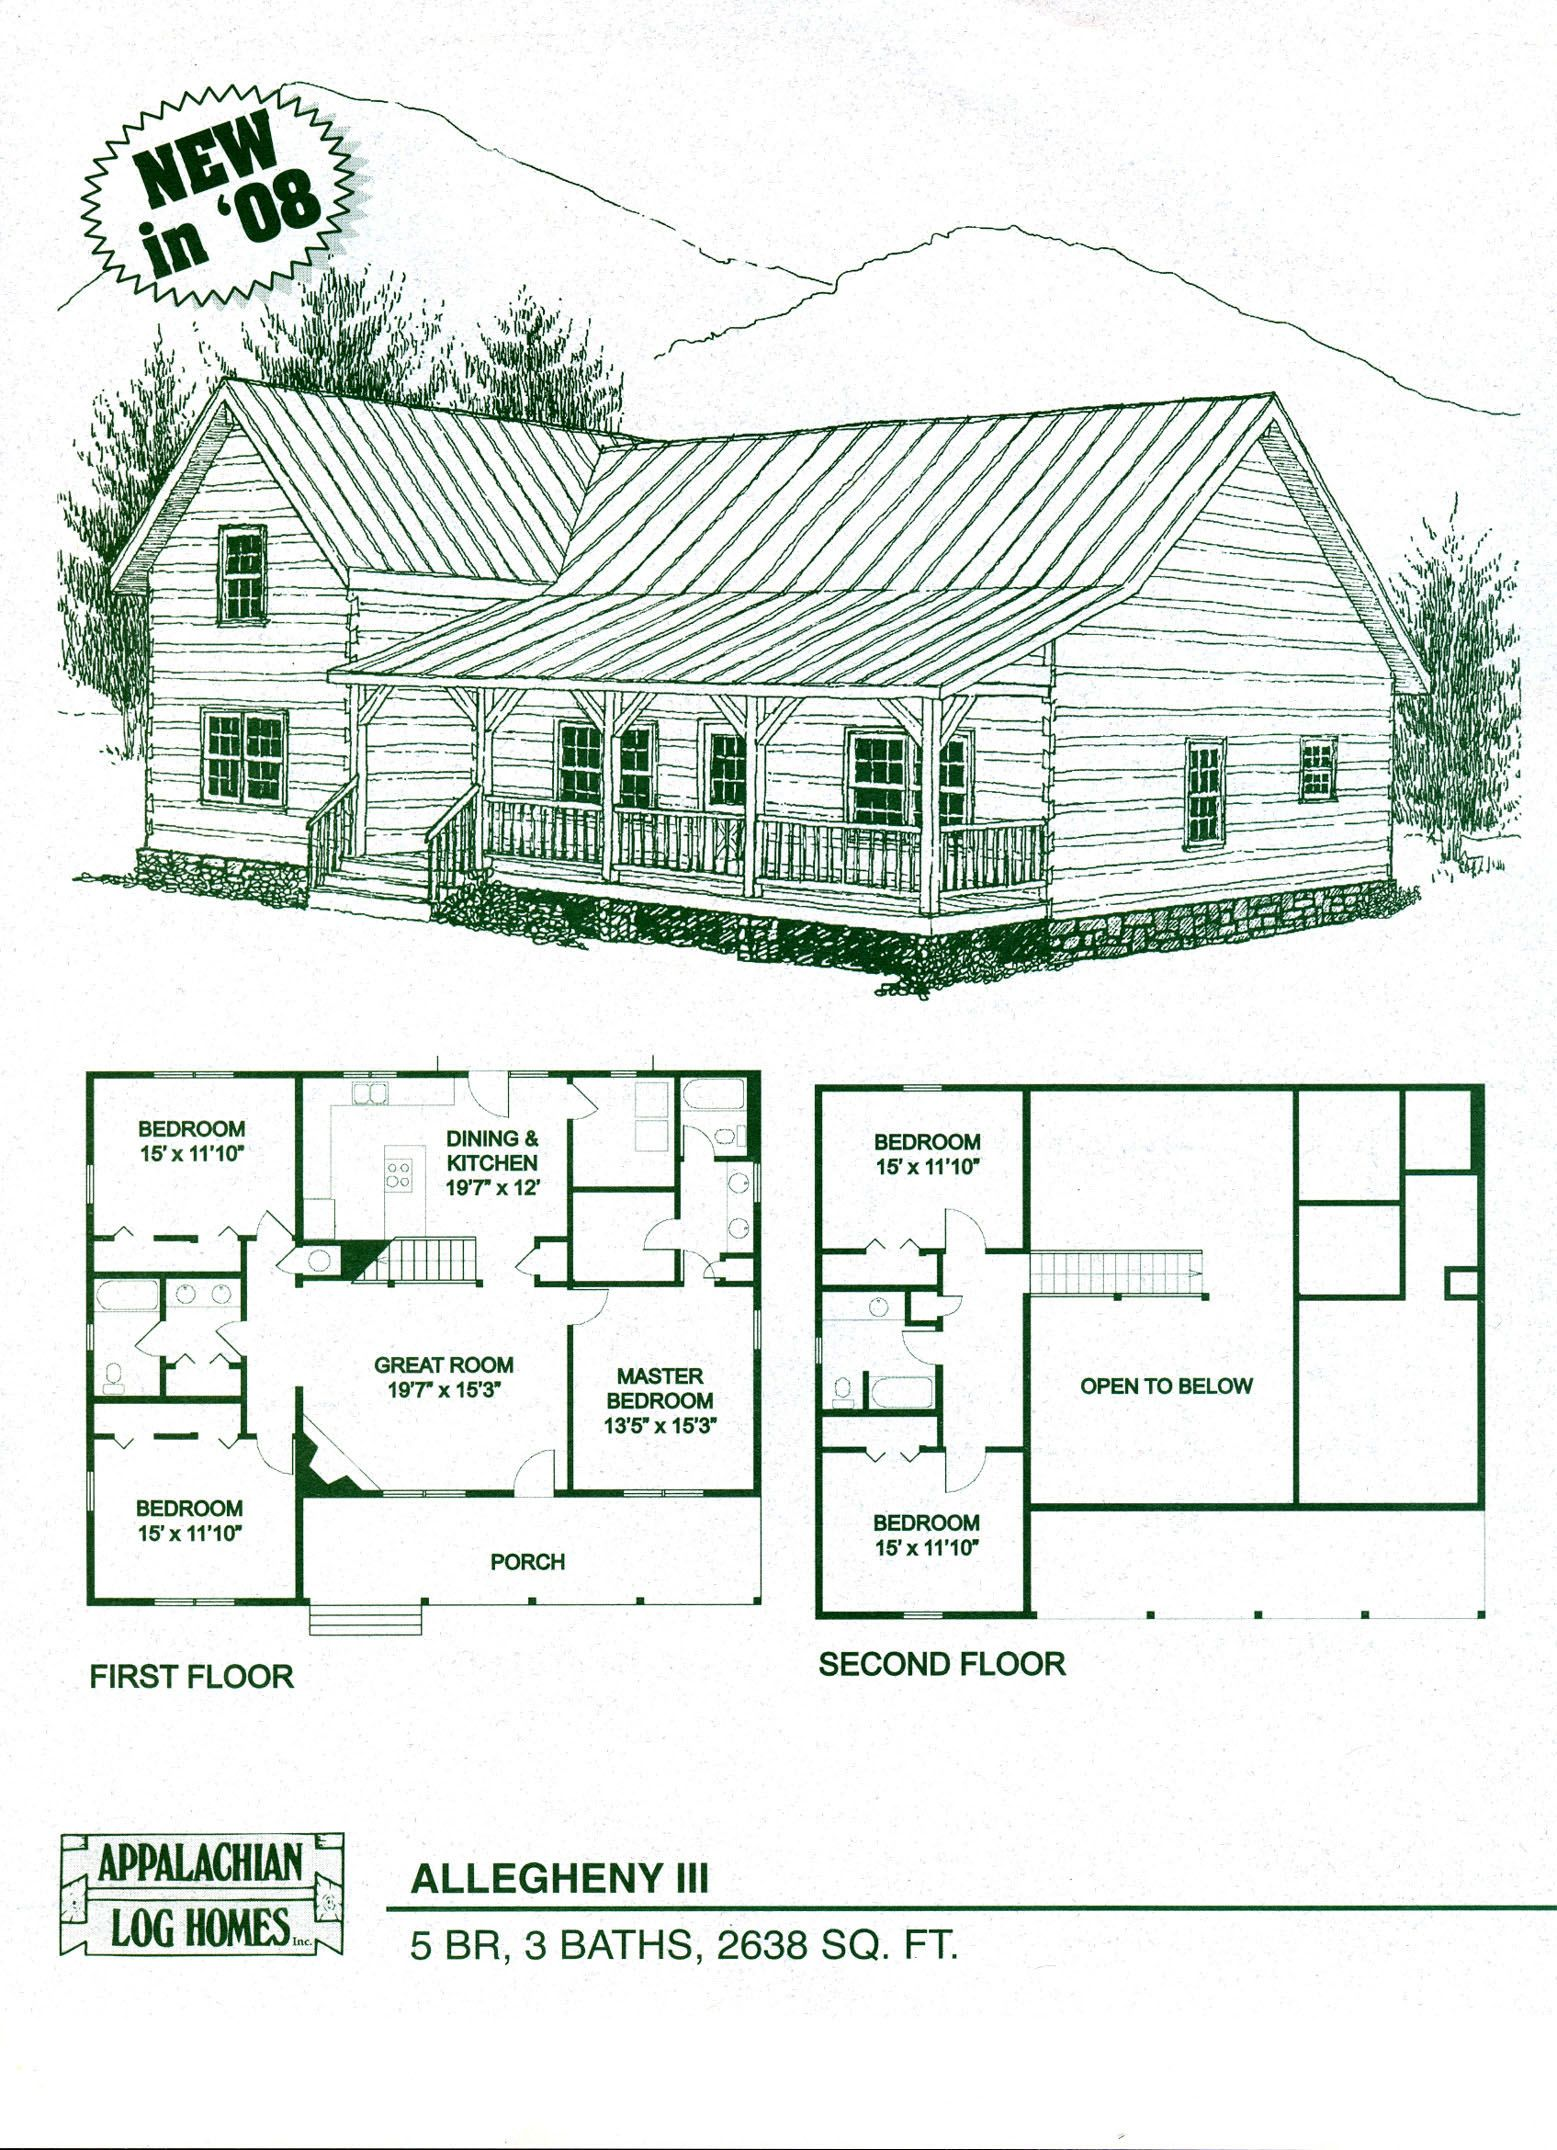 Log home floor plans log cabin kits appalachian log for Small cabin floor plans free